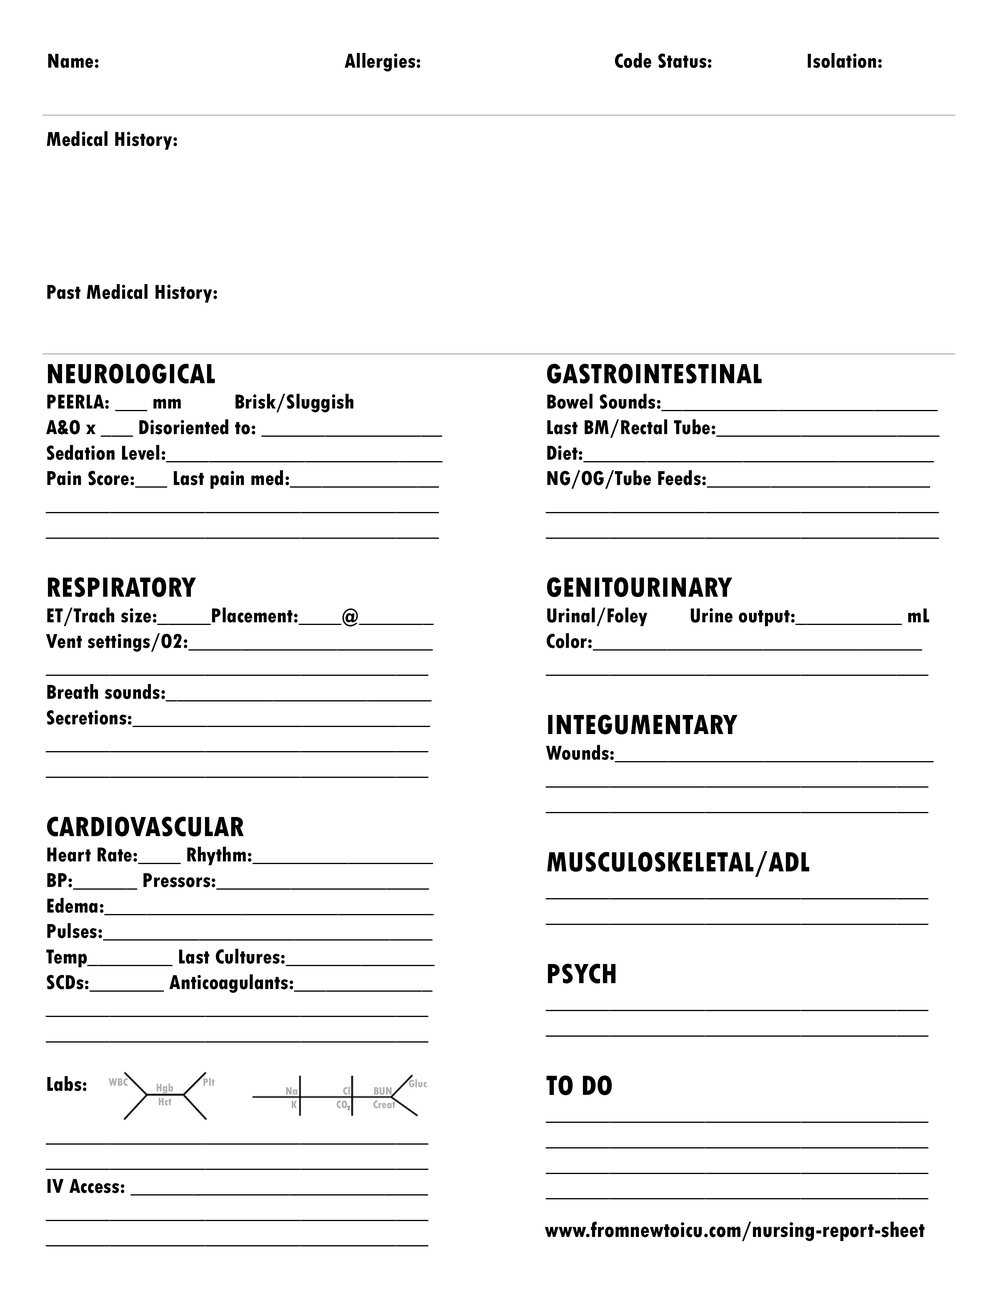 Nursing Report Sheet — From New To Icu Throughout Nurse Shift Report Sheet Template